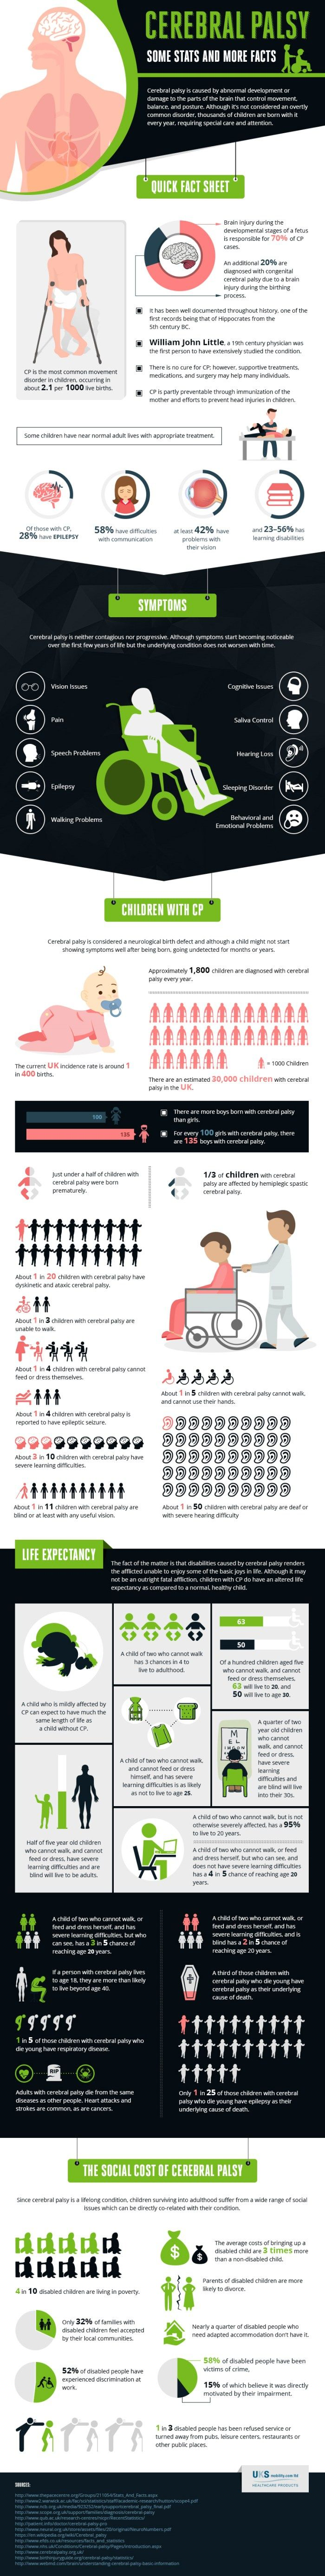 infographic about cerebral palsy. See text description below for detailed…